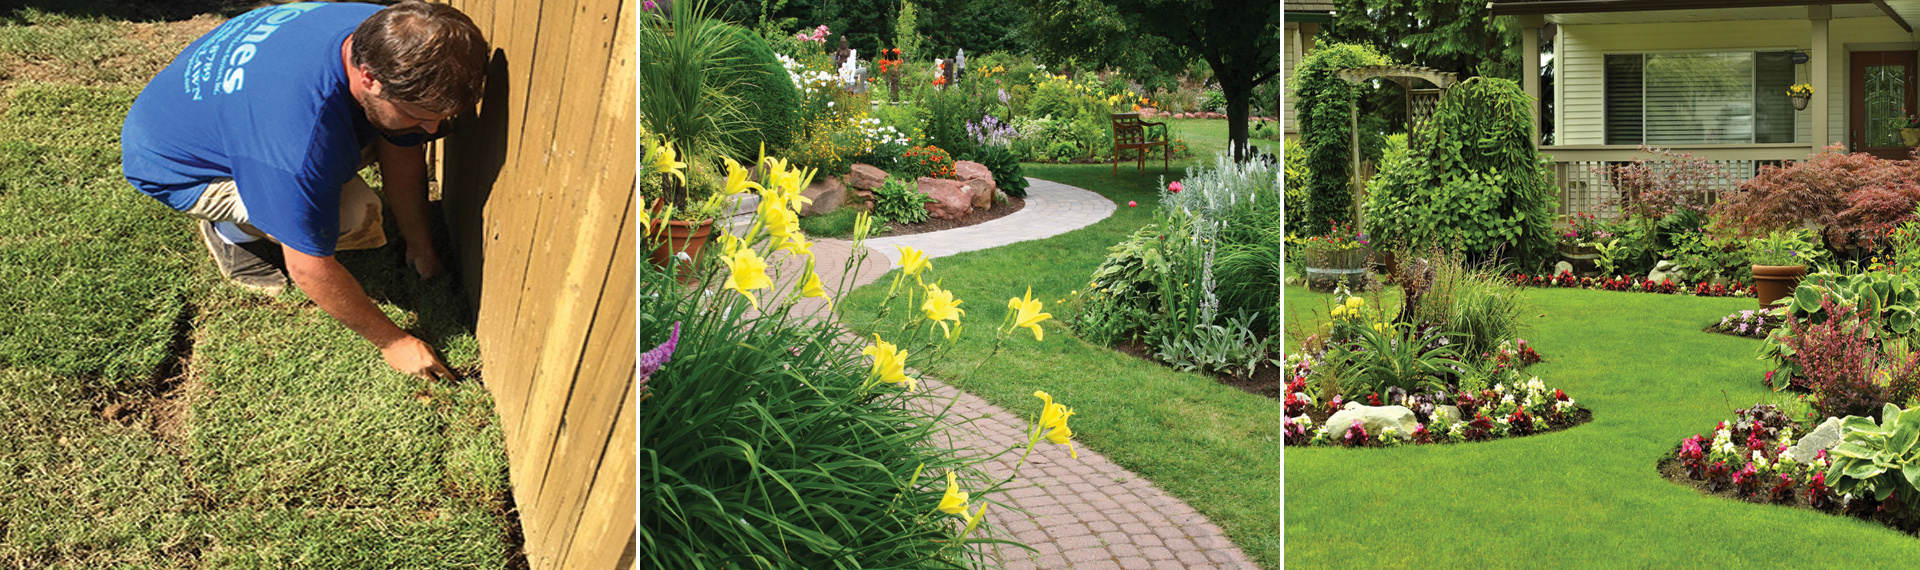 Jones Landscaping & Lawn Services INC Jacksonville AR